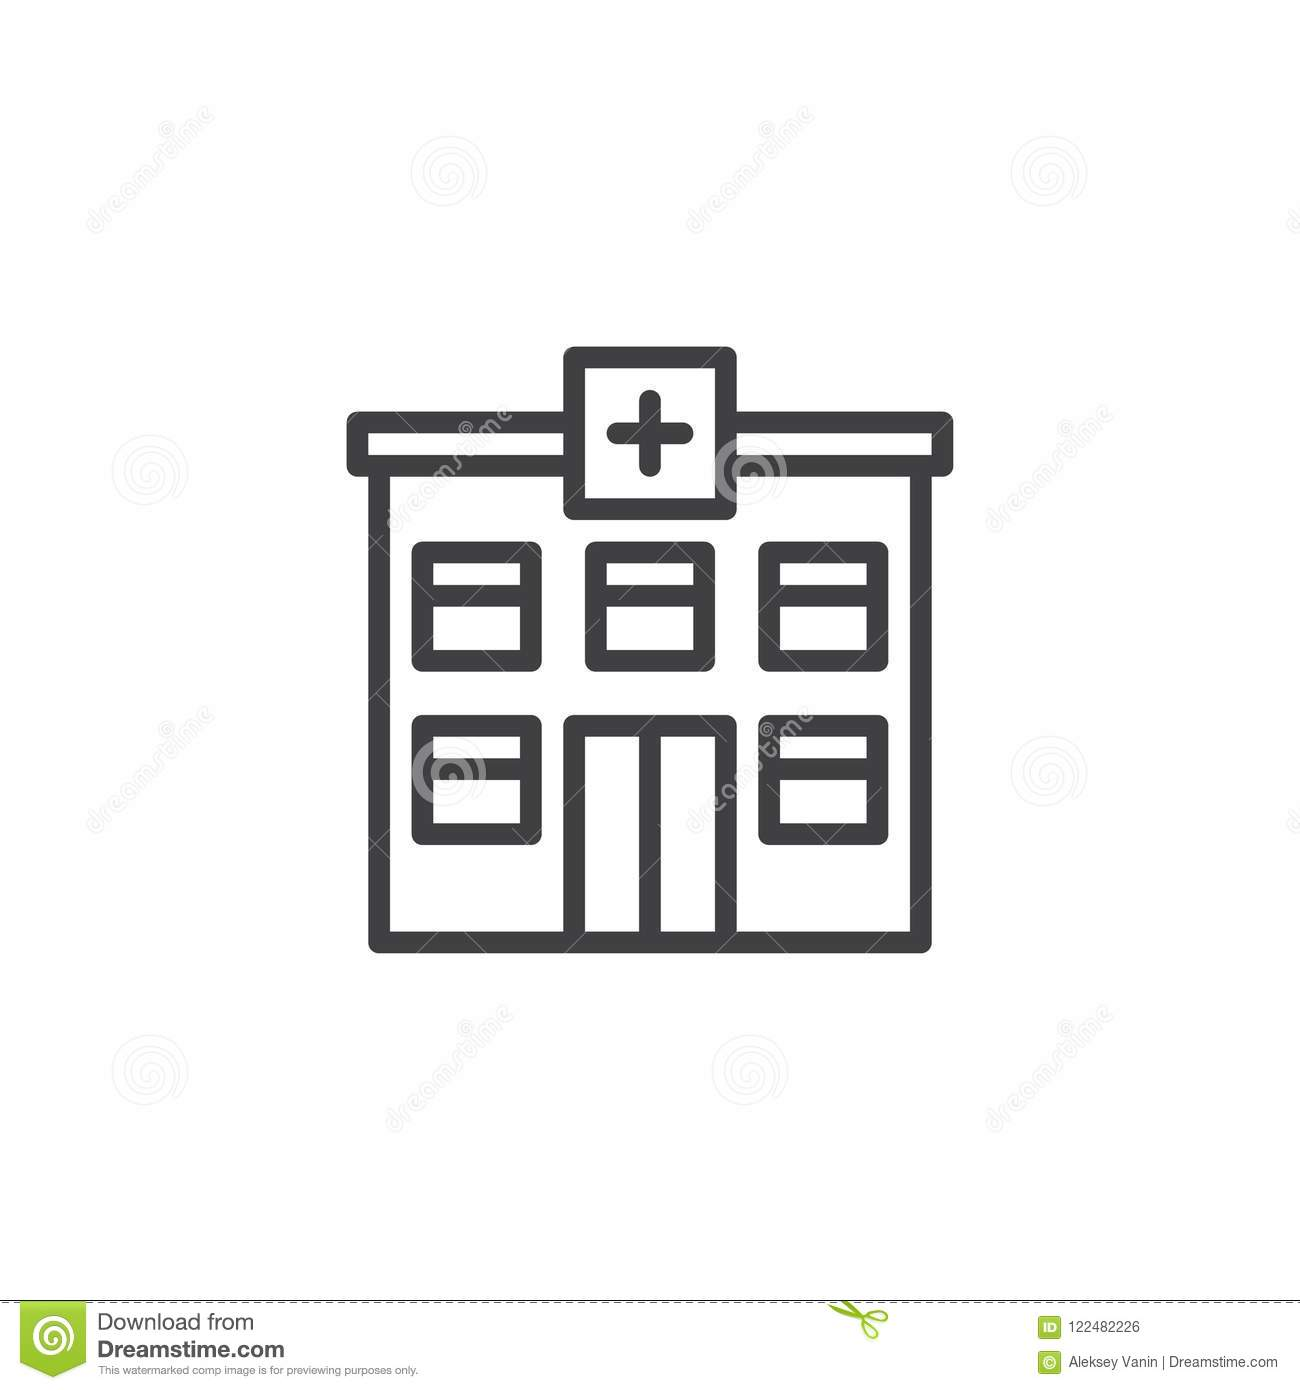 Hospital Building Outline Icon Stock Vector - Illustration